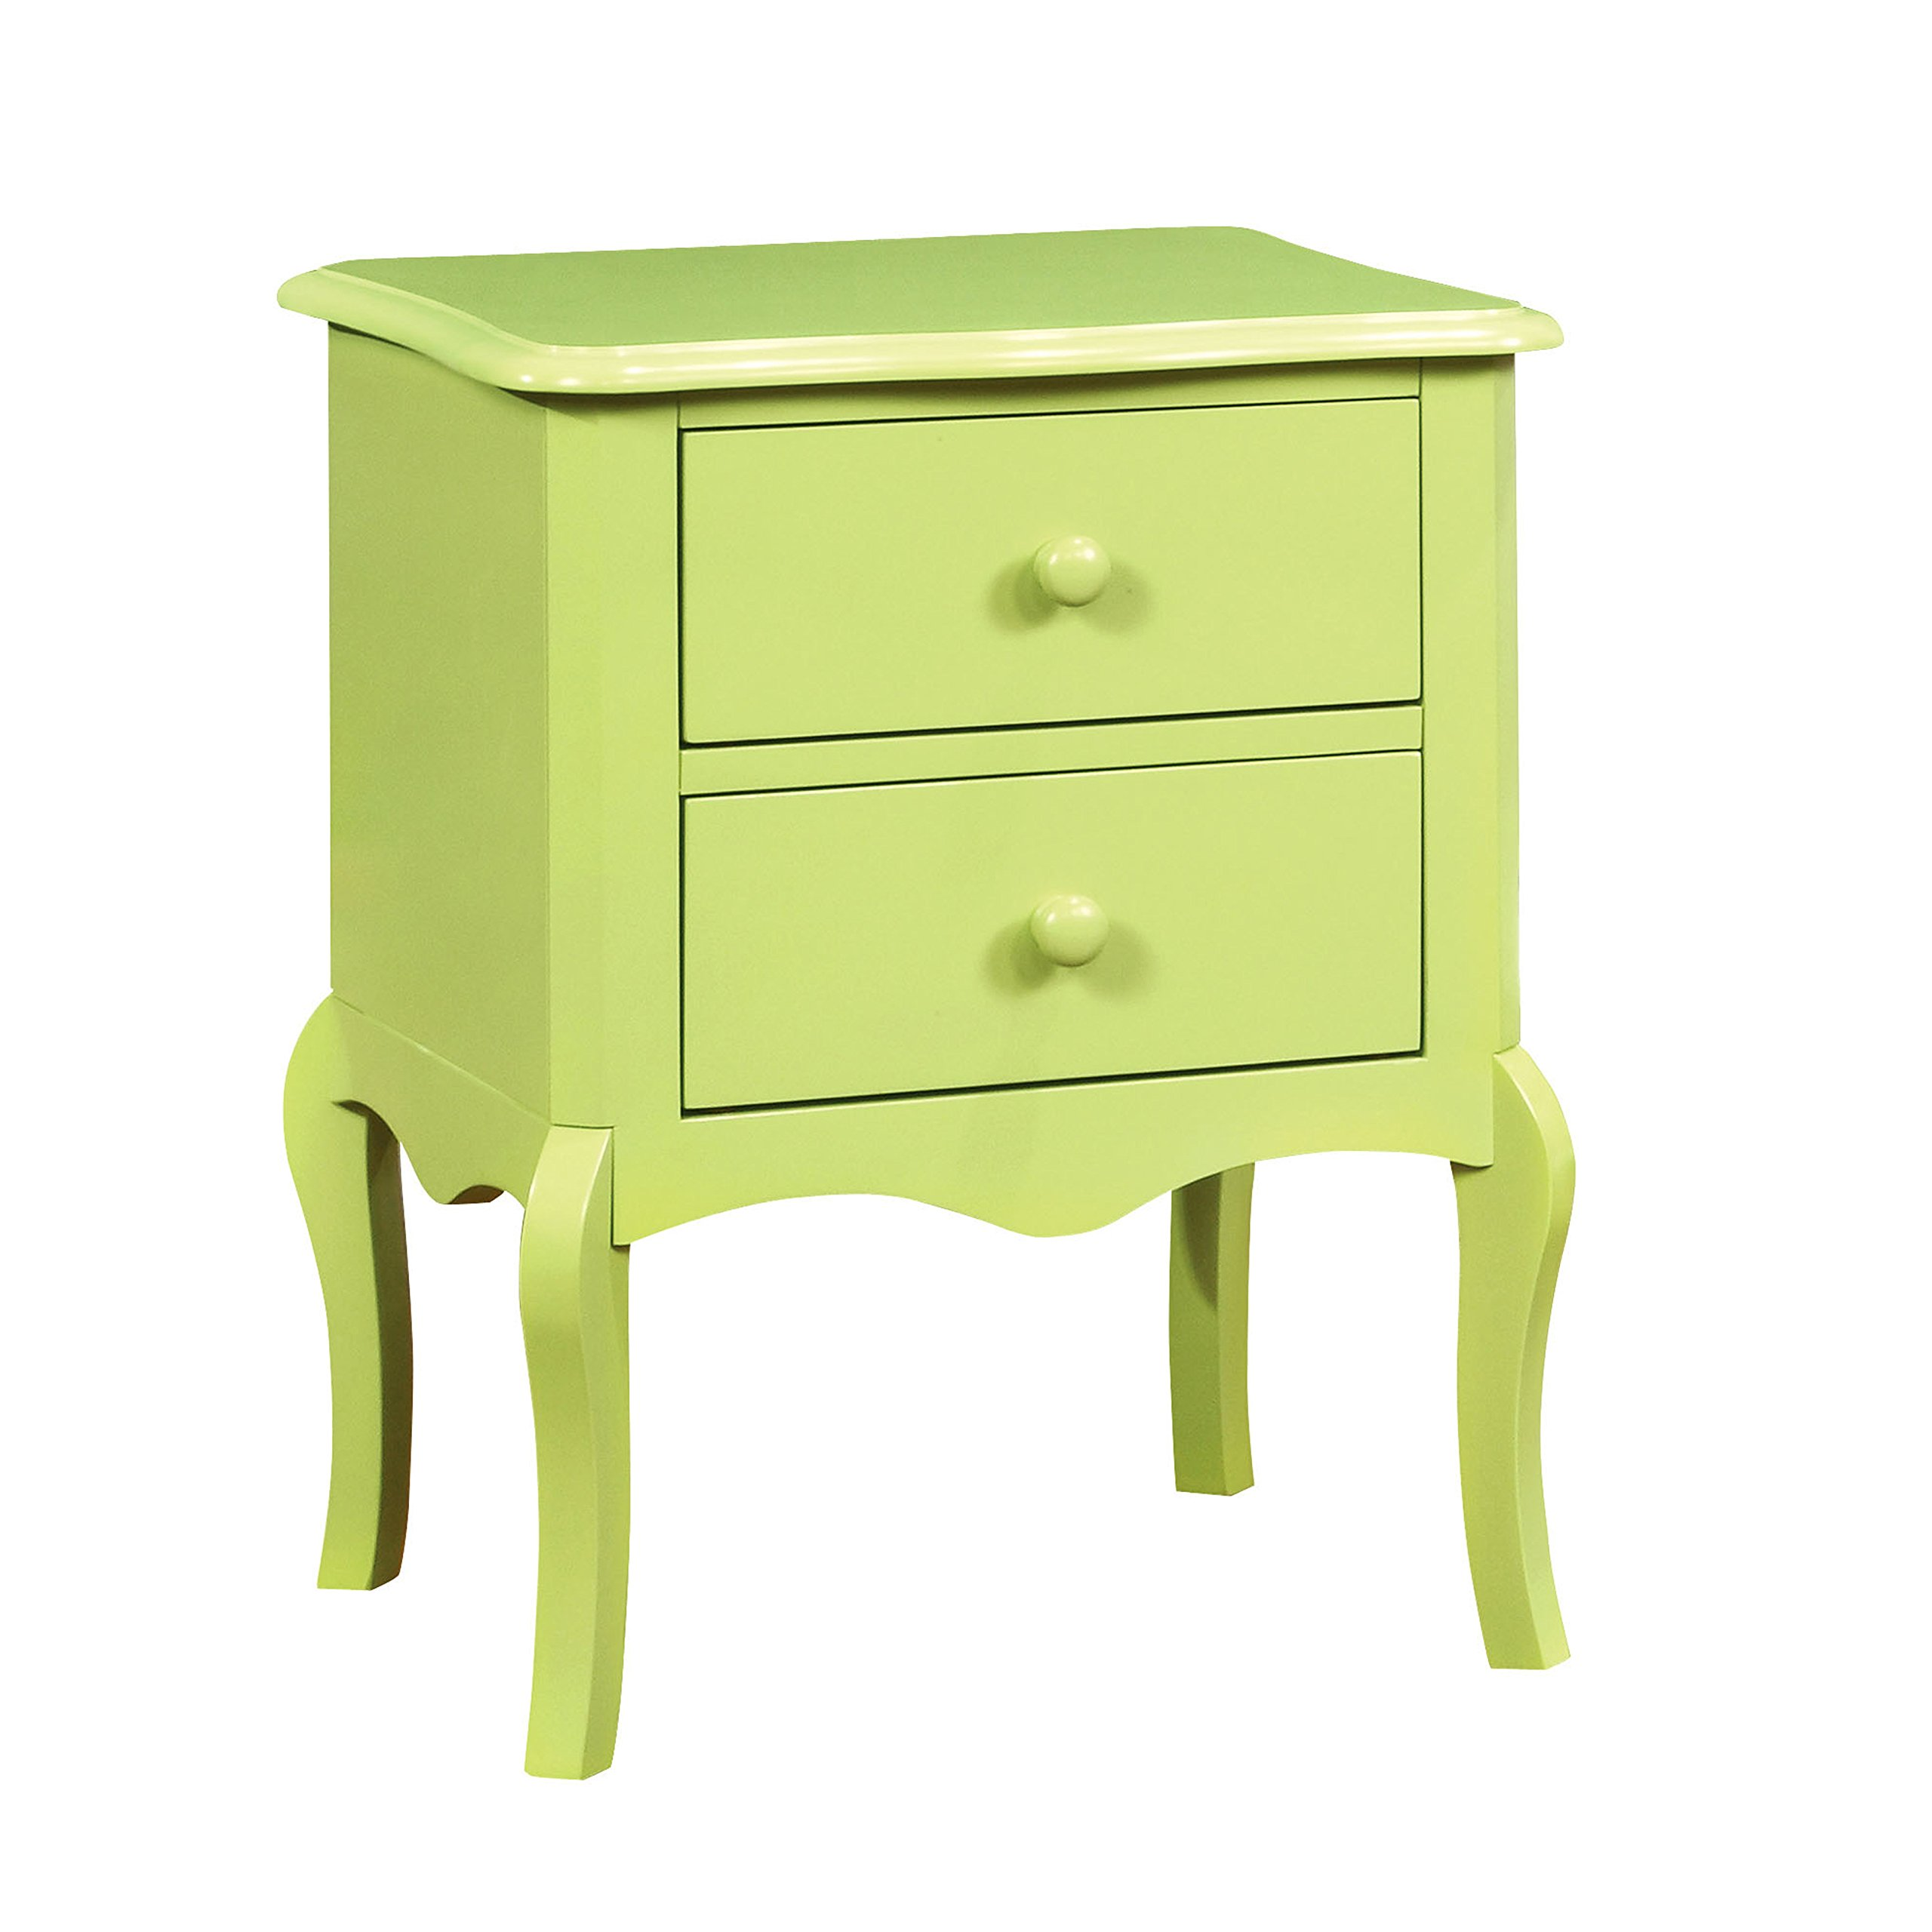 HOMES: Inside + Out IDF-AC325AG Edna Nightstand Childrens, Apple Green